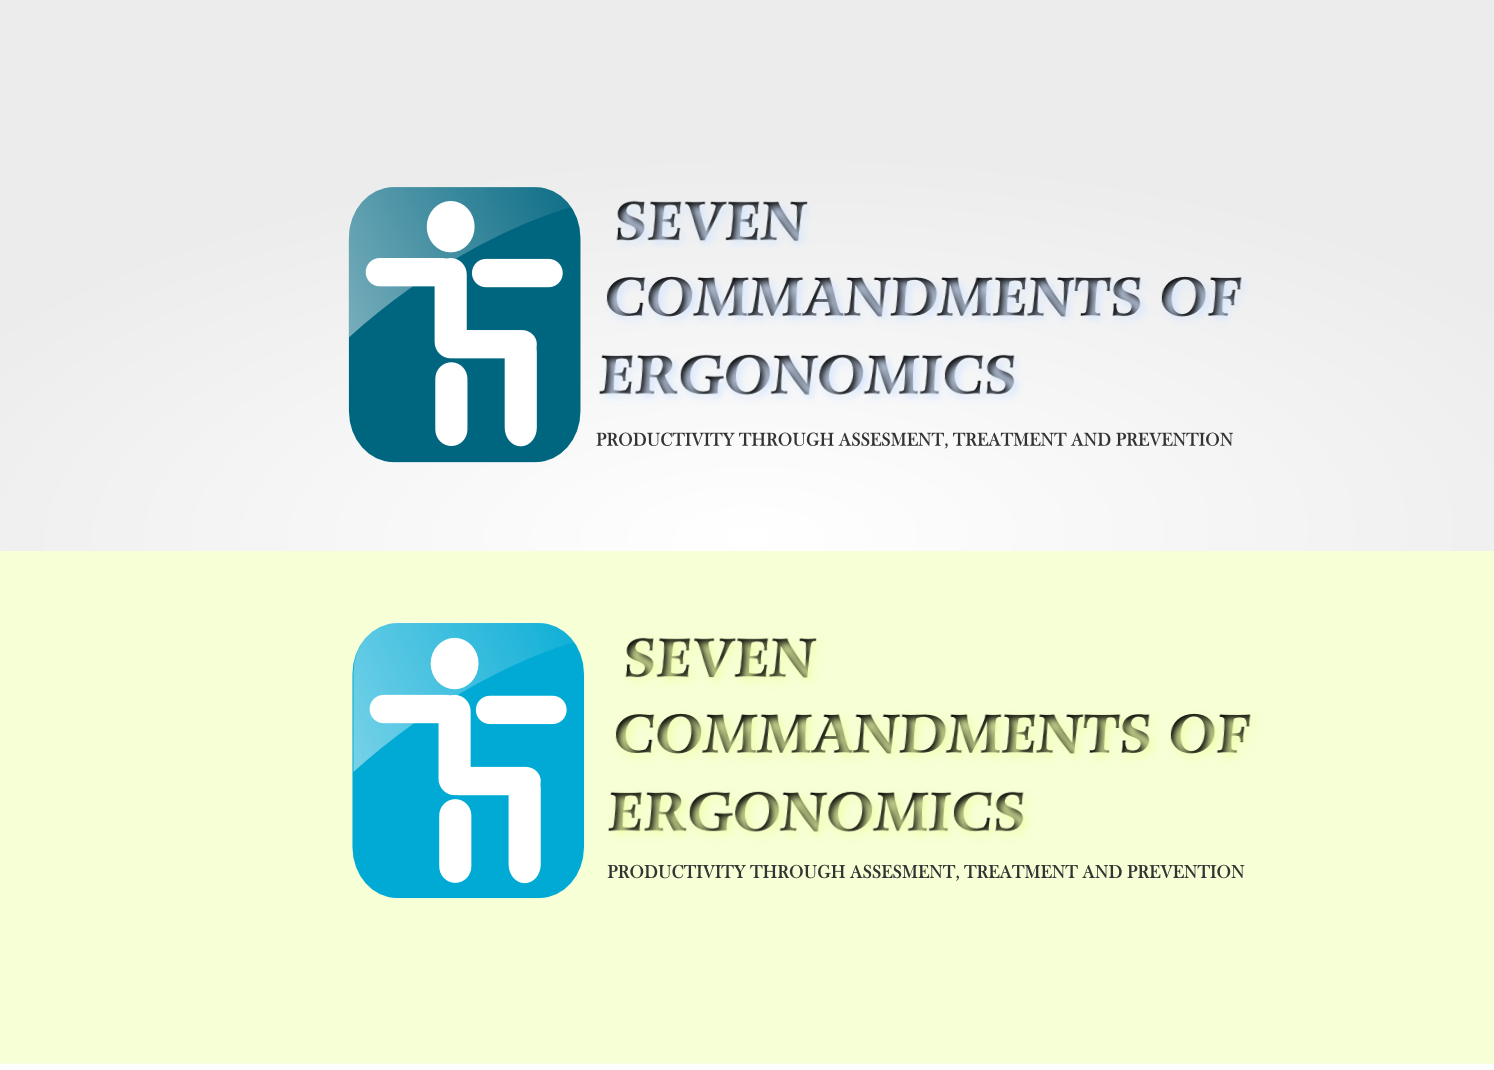 Logo Design by Joseph calunsag Cagaanan - Entry No. 127 in the Logo Design Contest Logo Design for Seven Commandments of Ergonomics.